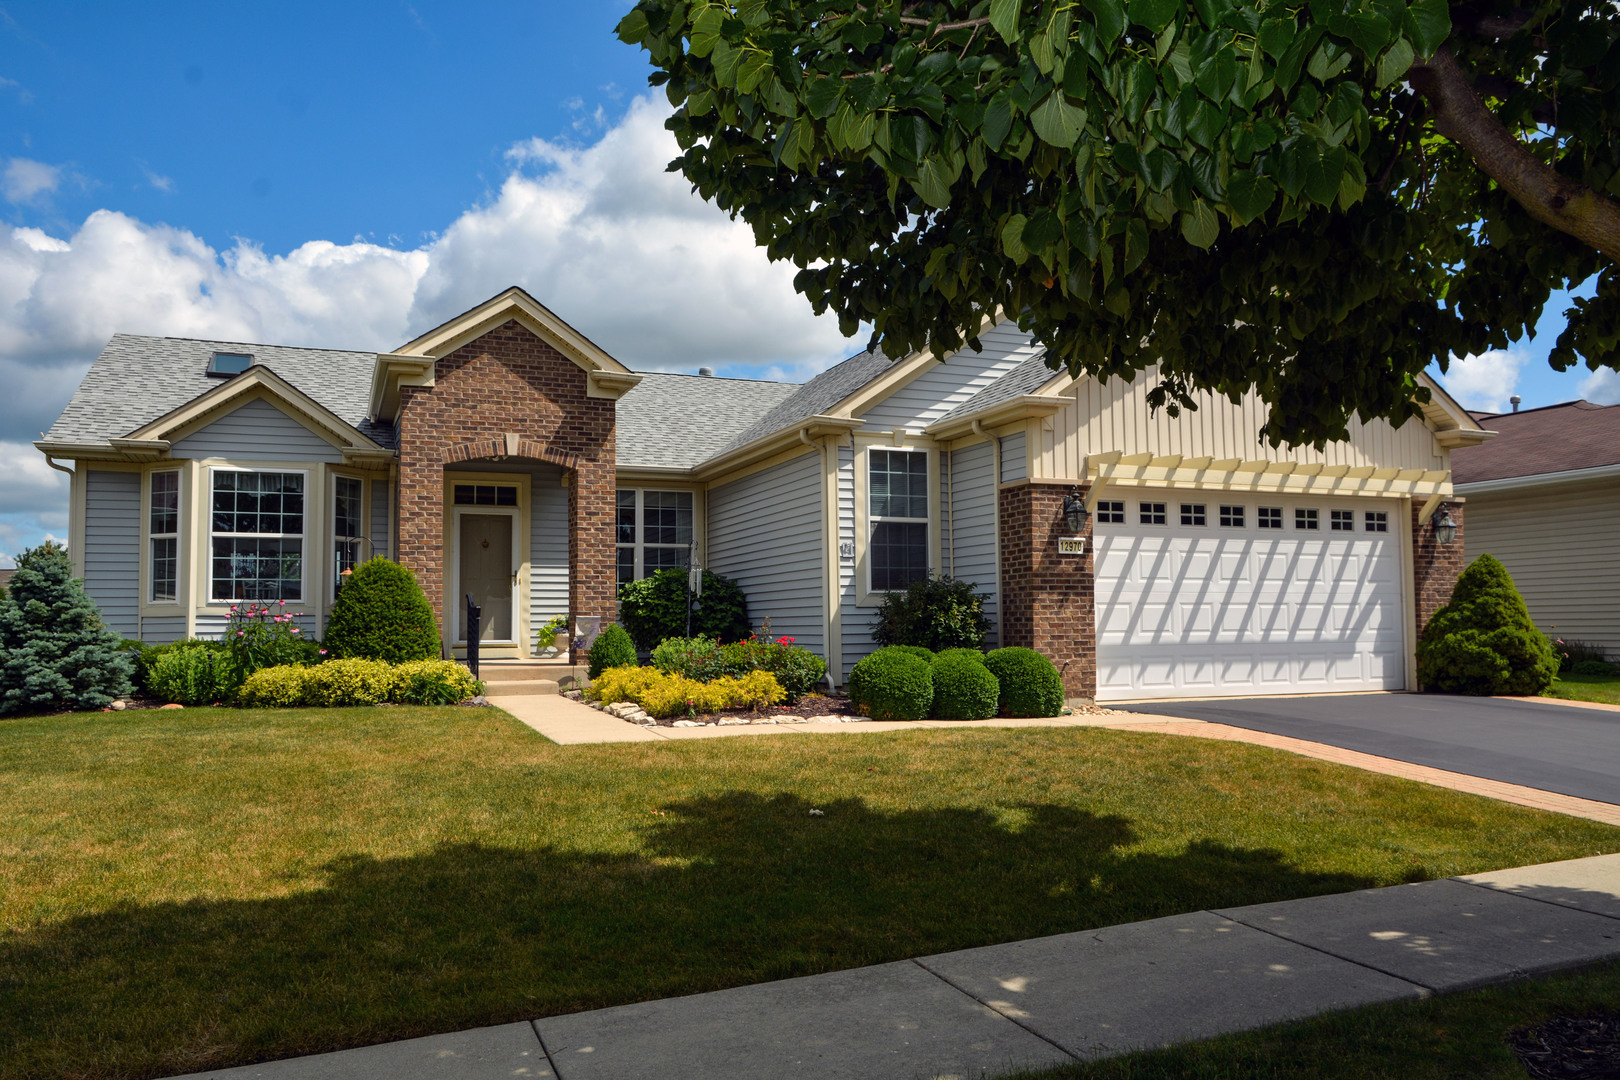 Photo for 12970 River Park Drive, Huntley, IL 60142 (MLS # 10448734)